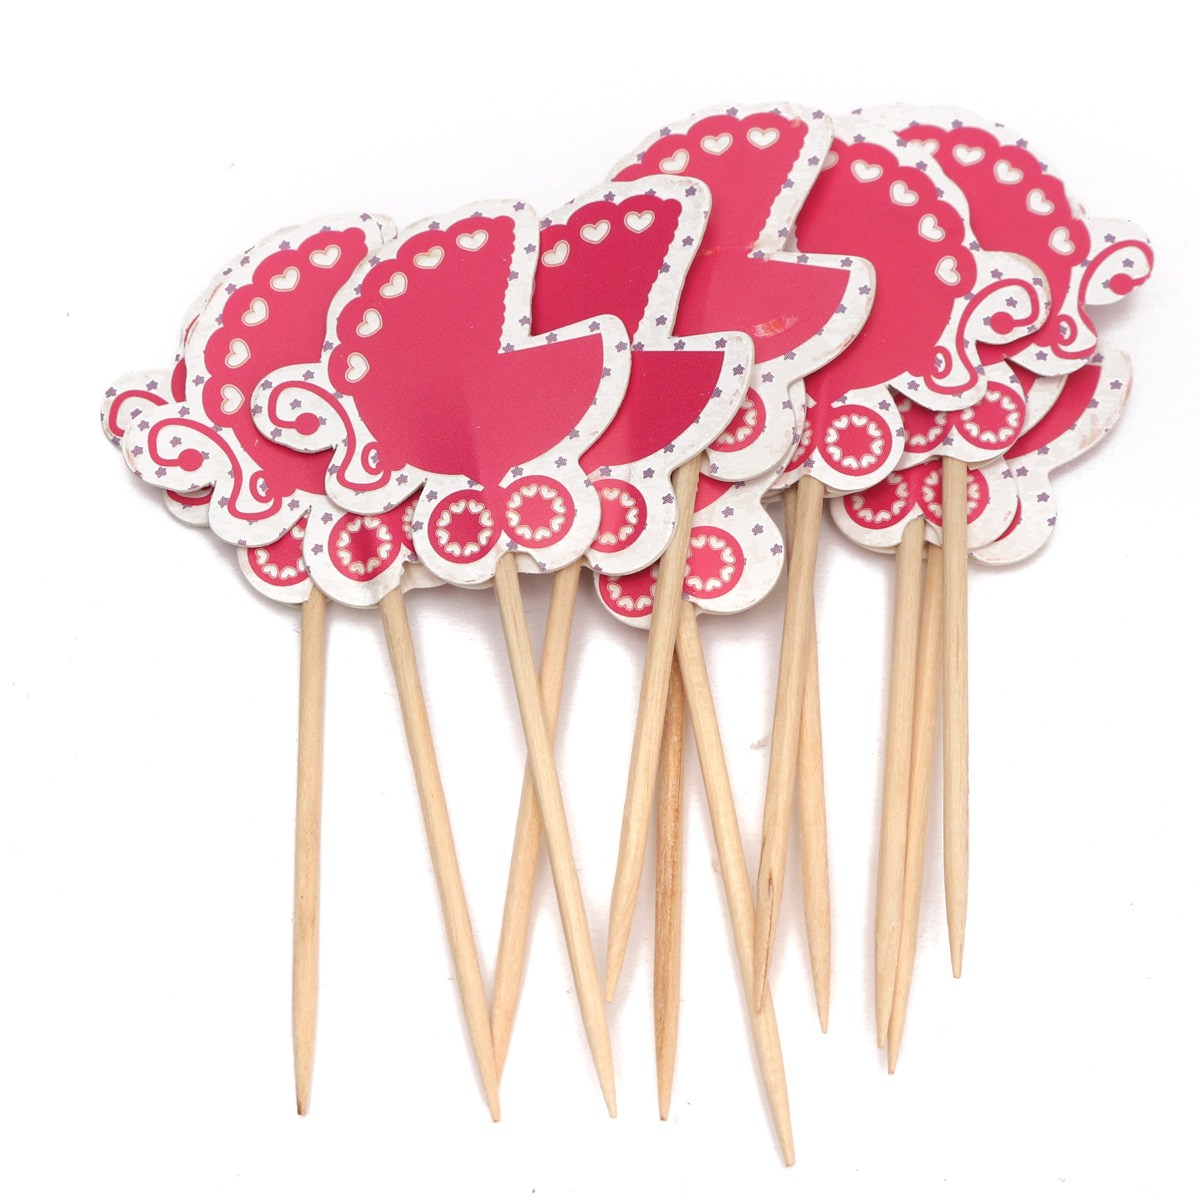 Cake Decoration Sticks : 12pcs Paper Cupcake Food Picks Cocktail Sticks Toppers ...